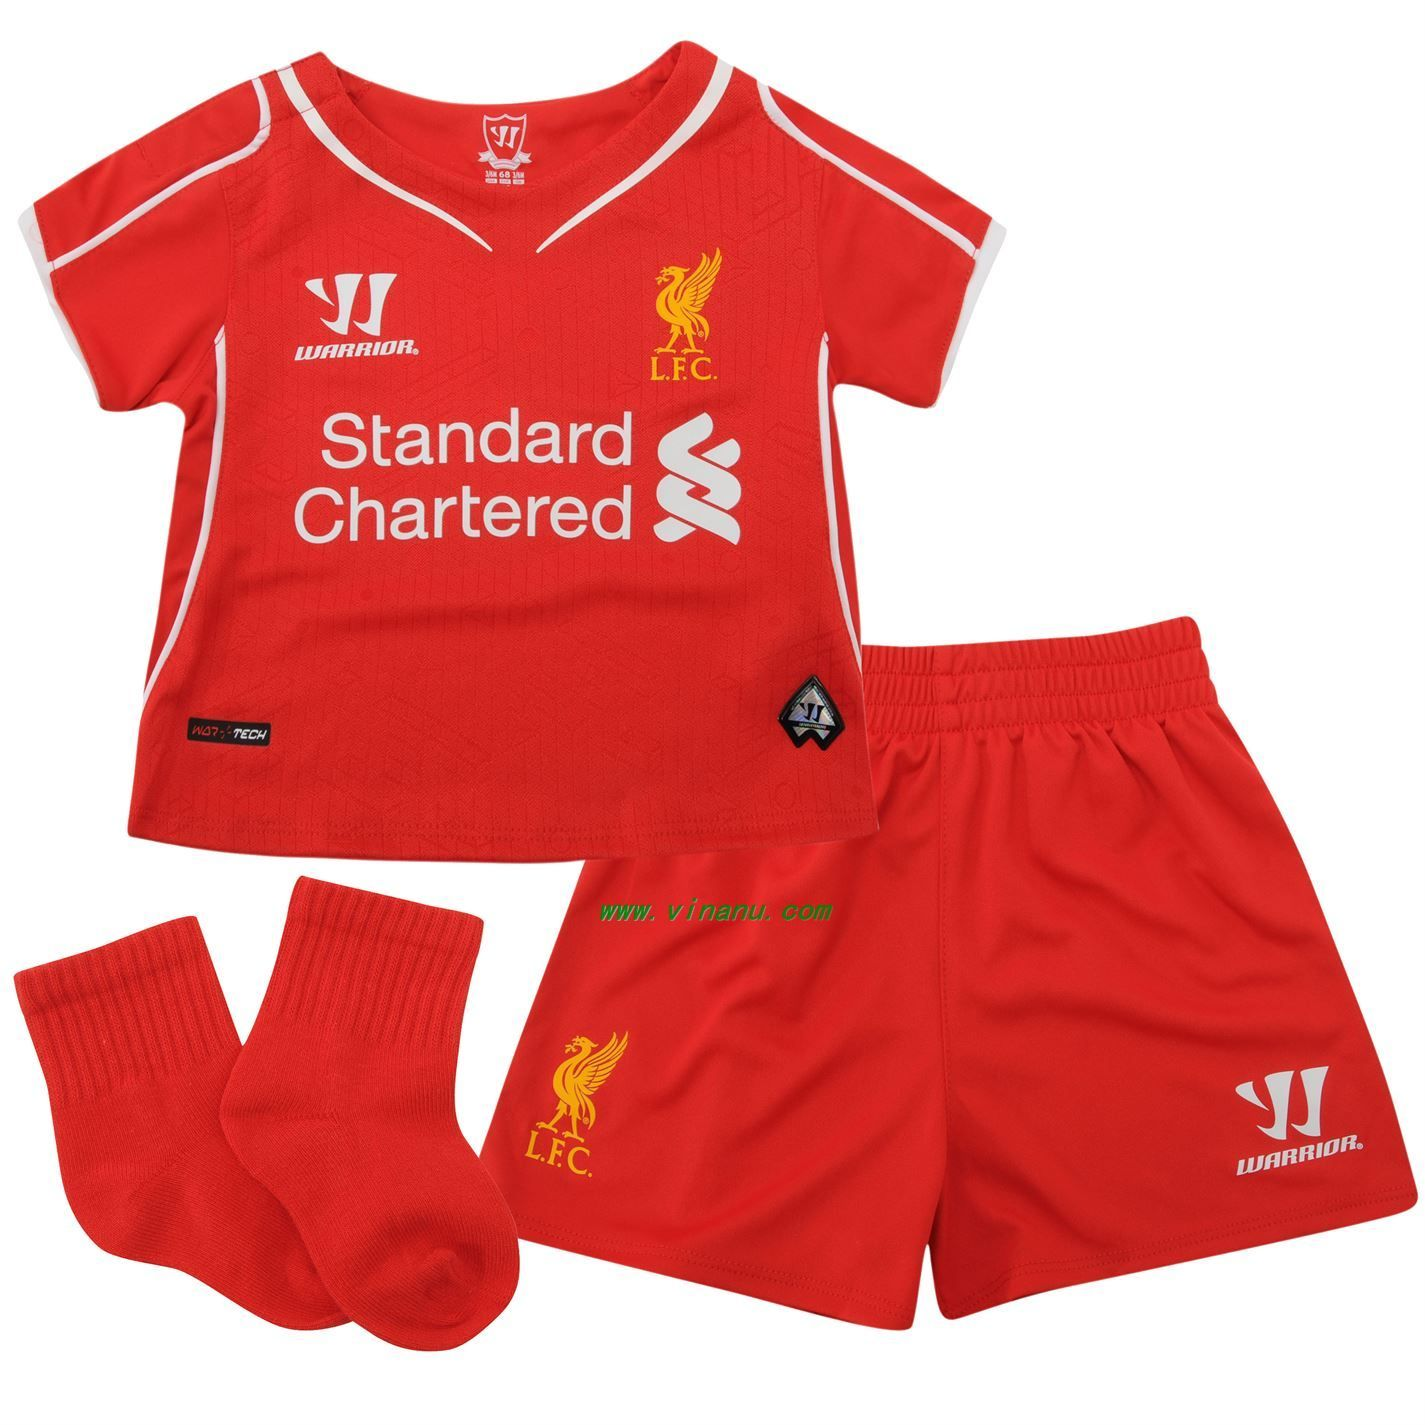 the new soccer jersey for the new season from liverpool. it is for kids .